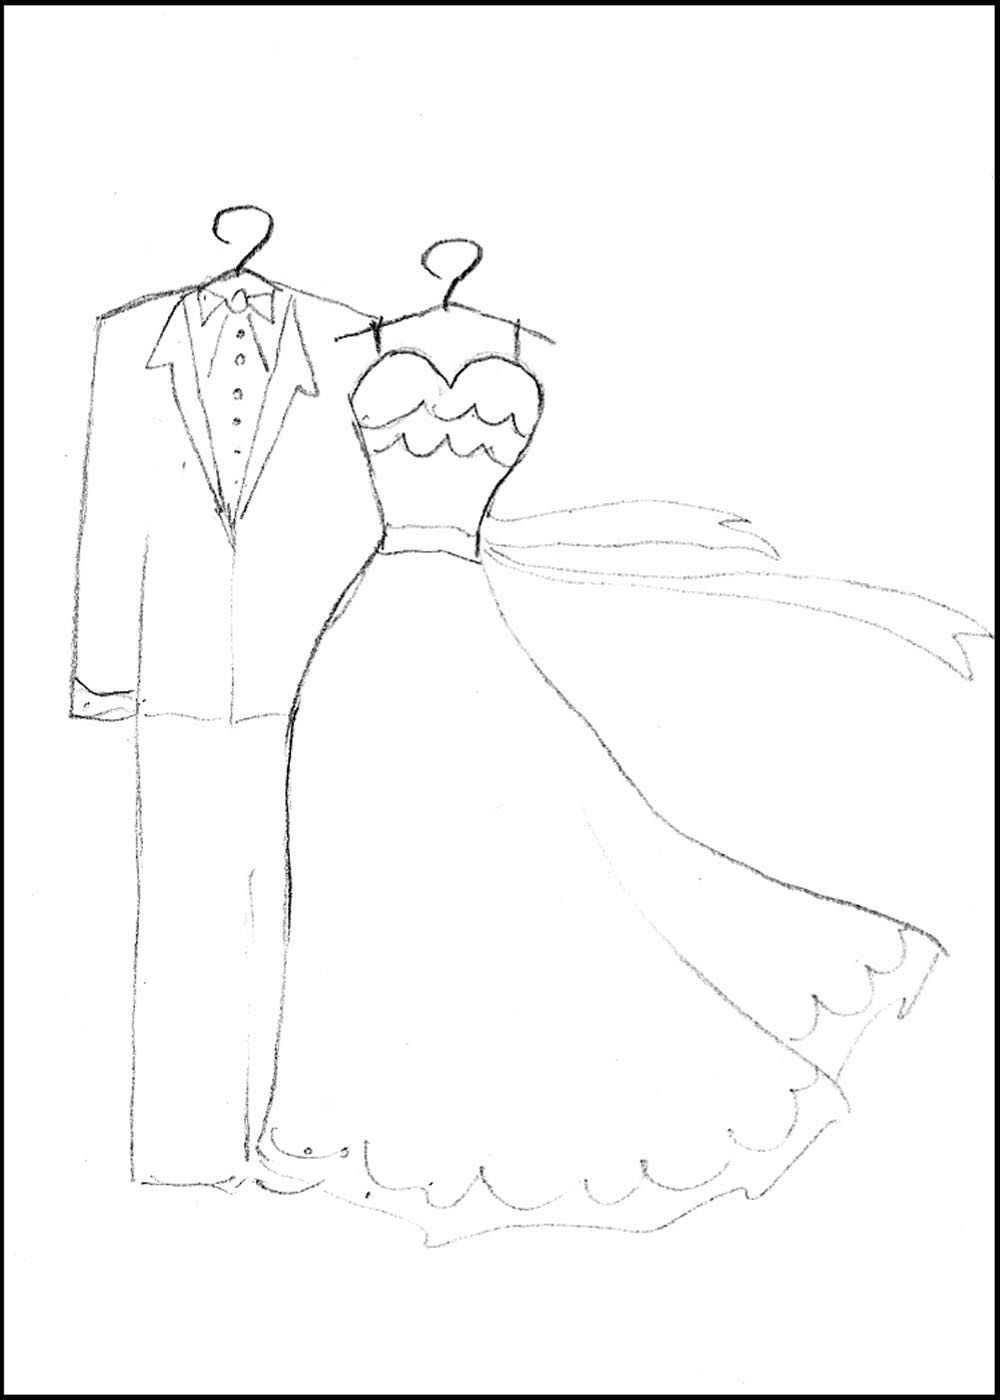 Topmodel Ausmalbilder Hochzeit : Coloring Pages Maybe For The Kids During The Reception Free